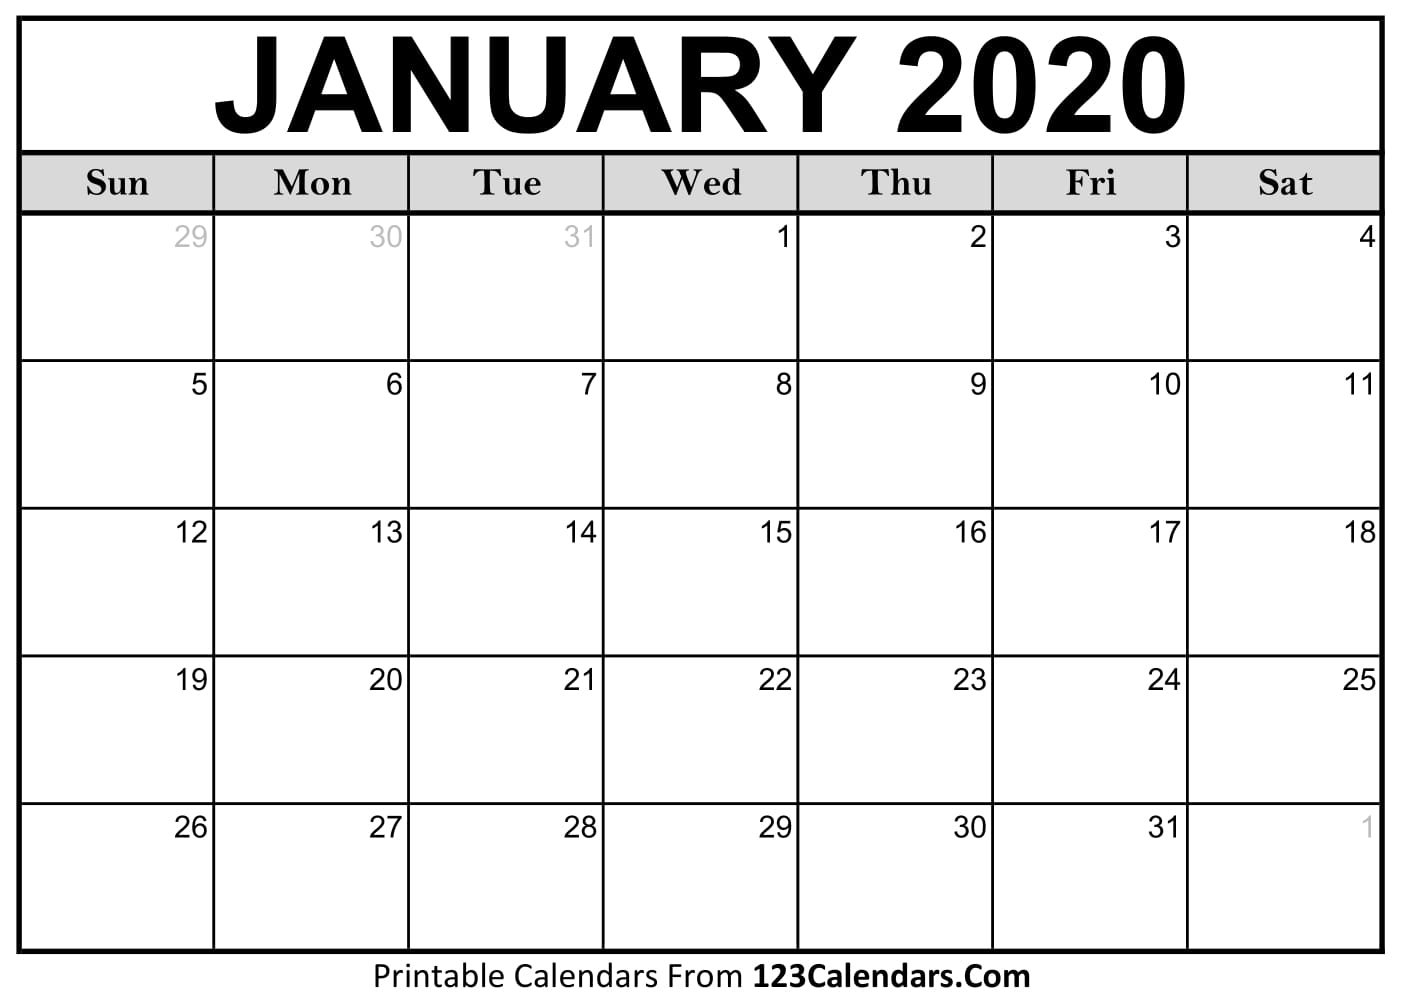 January 2020 Calendar Wallpapers  Top Free January 2020 with Show Calendar For January 2020